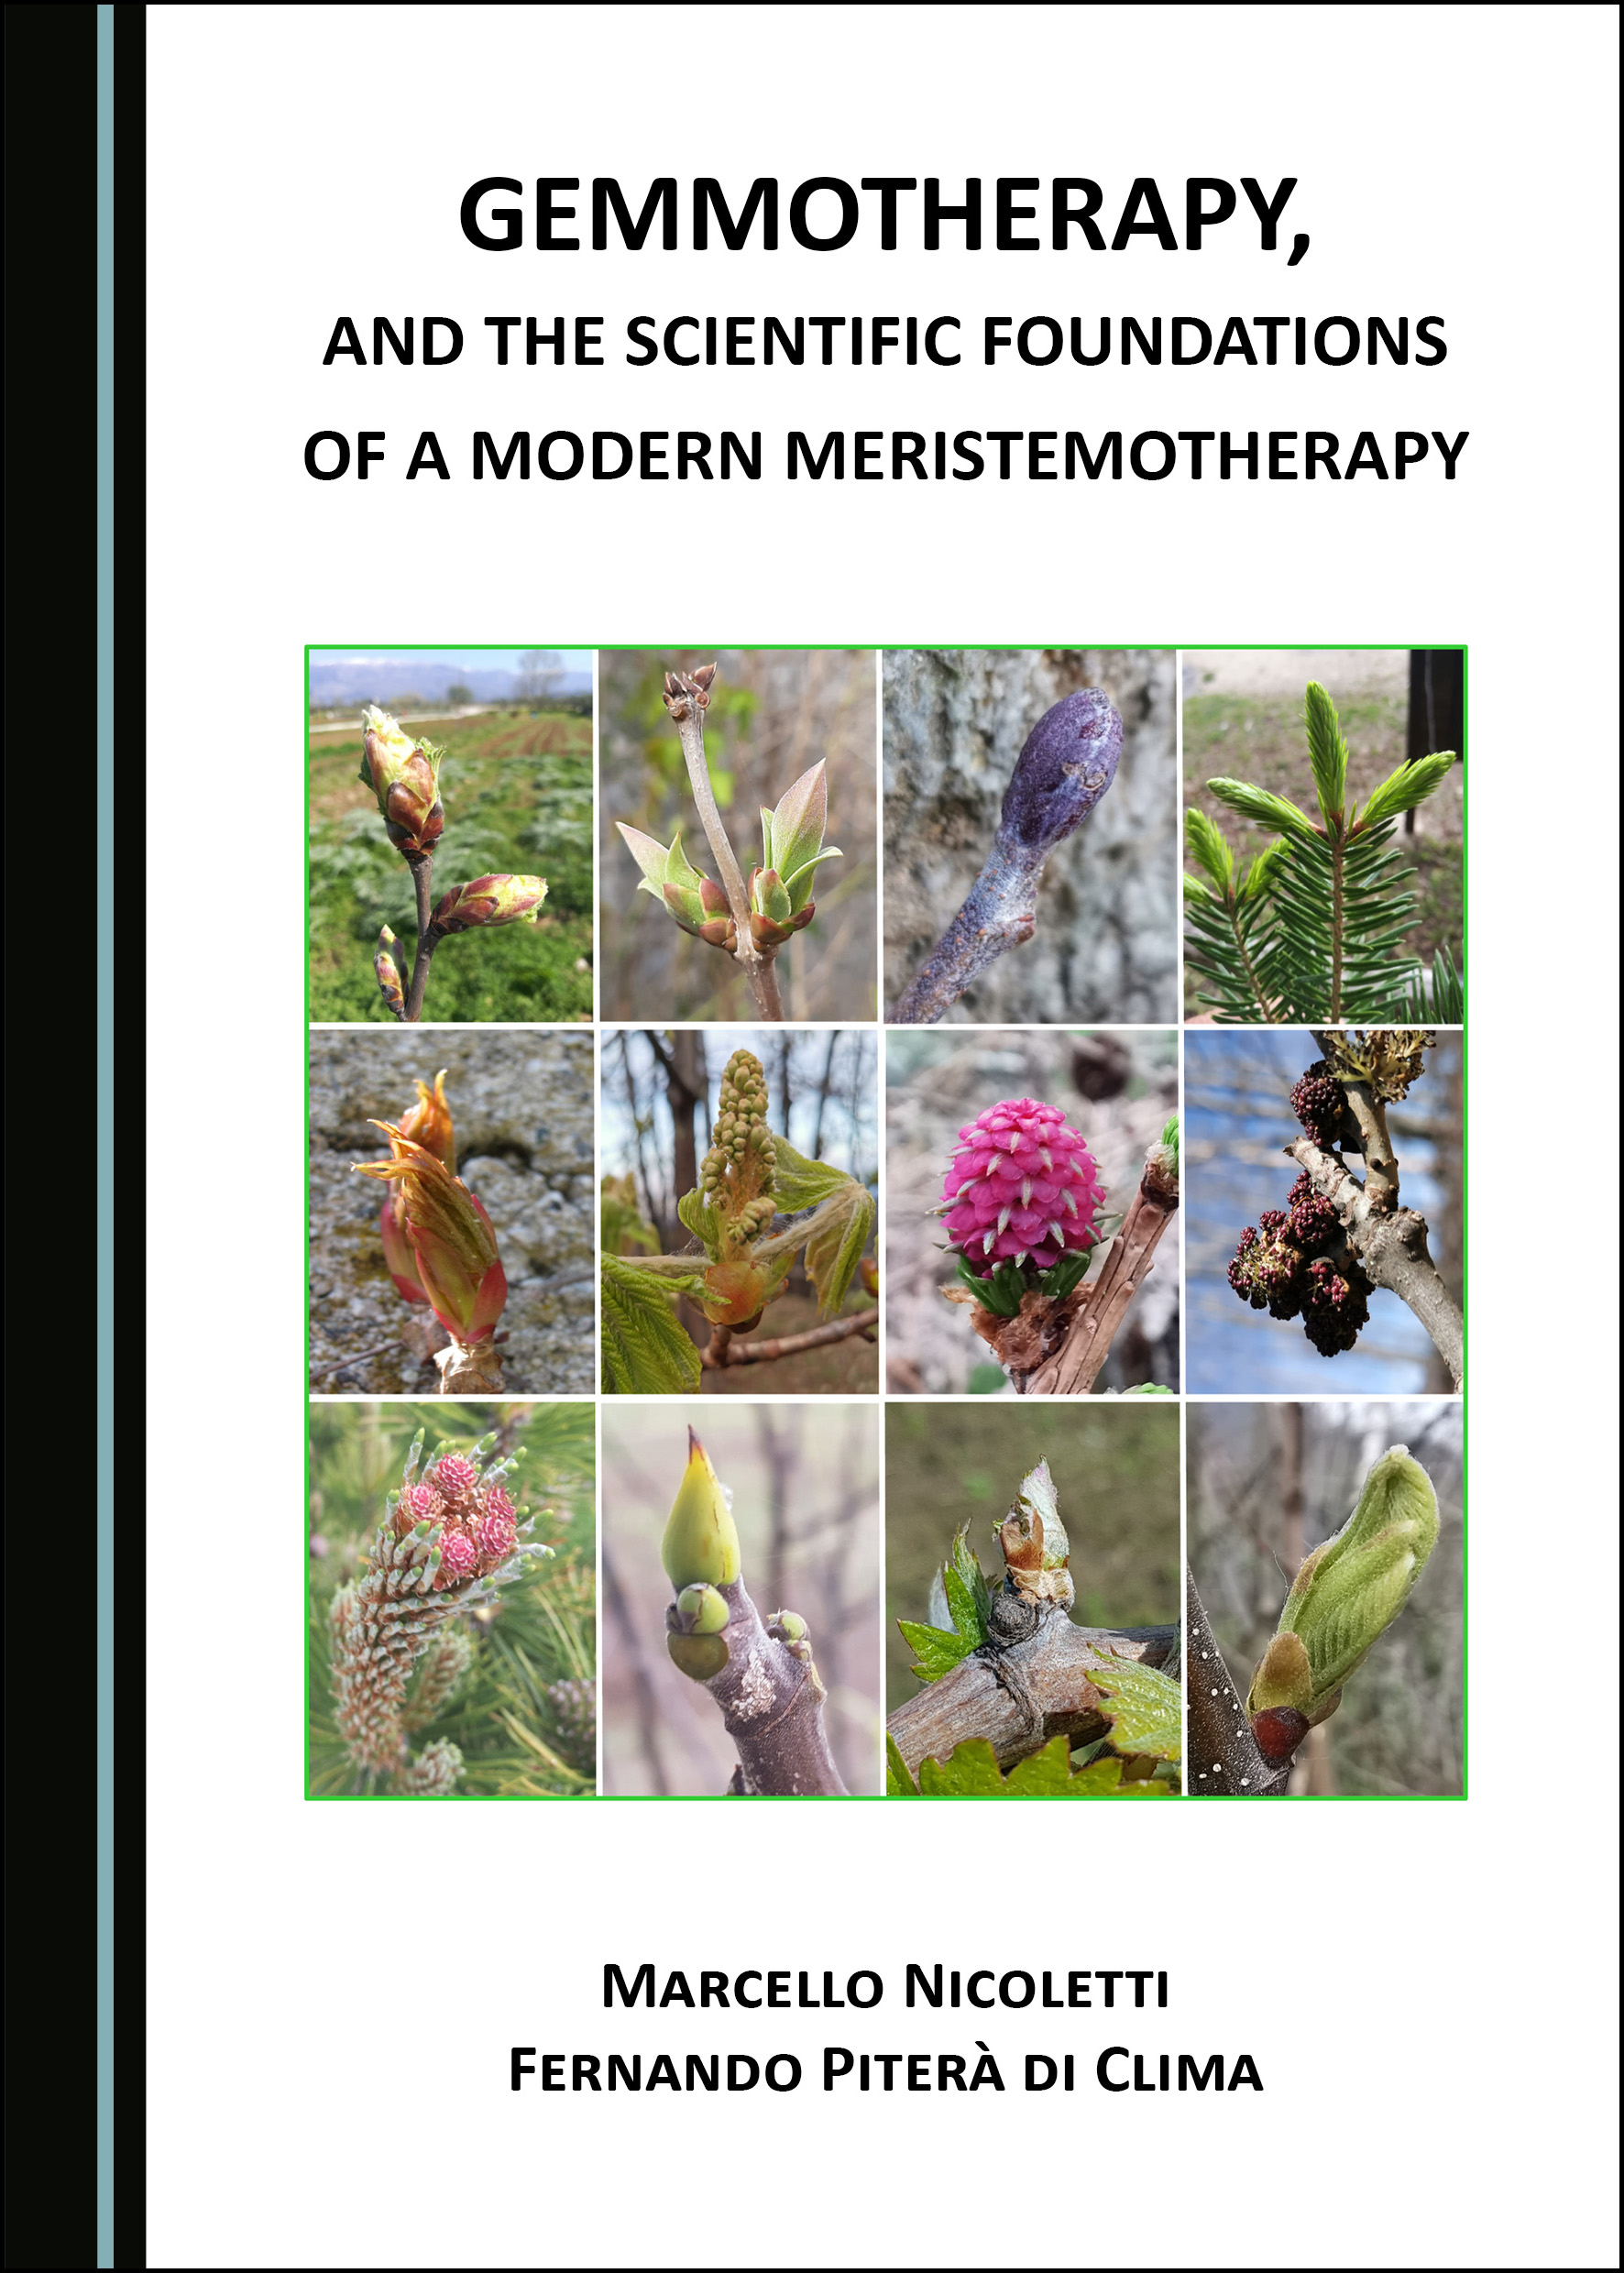 Gemmotherapy, and the Scientific Foundations of a Modern Meristemotherapy